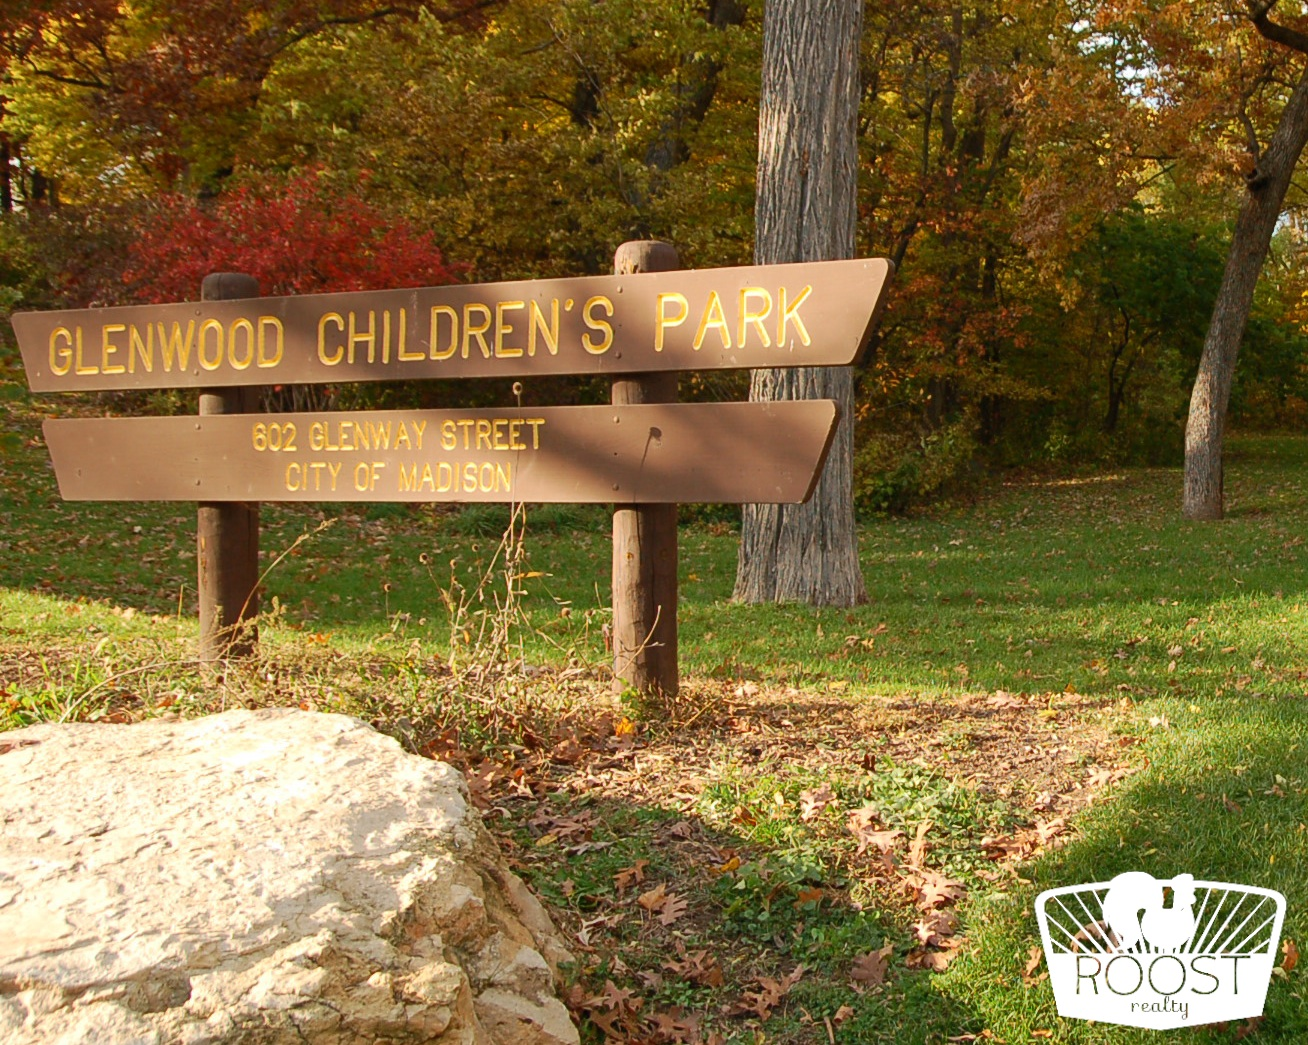 Glenwood Children's Park sign in the Dudgeon Monroe neighborhood.